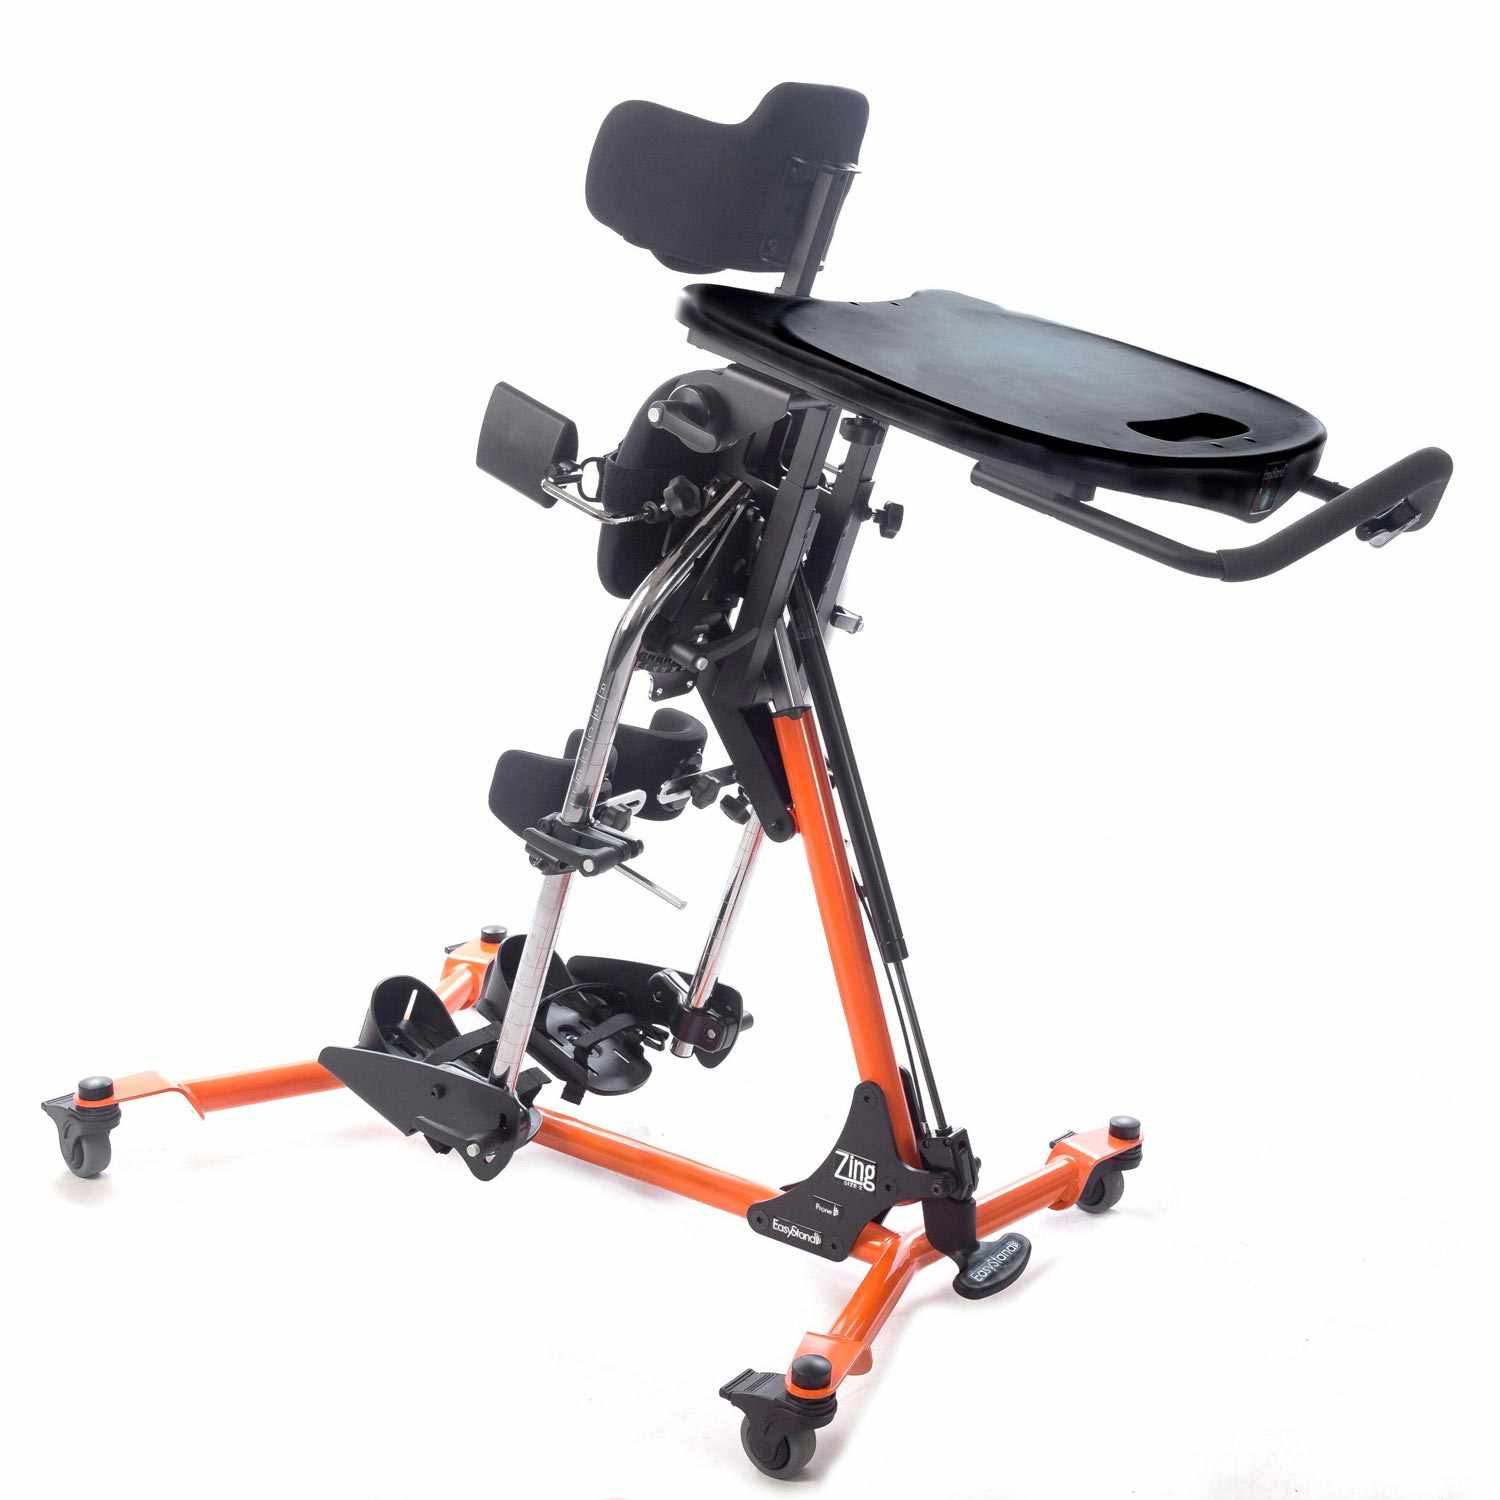 Zing size 2 prone stander - Gas spring lift